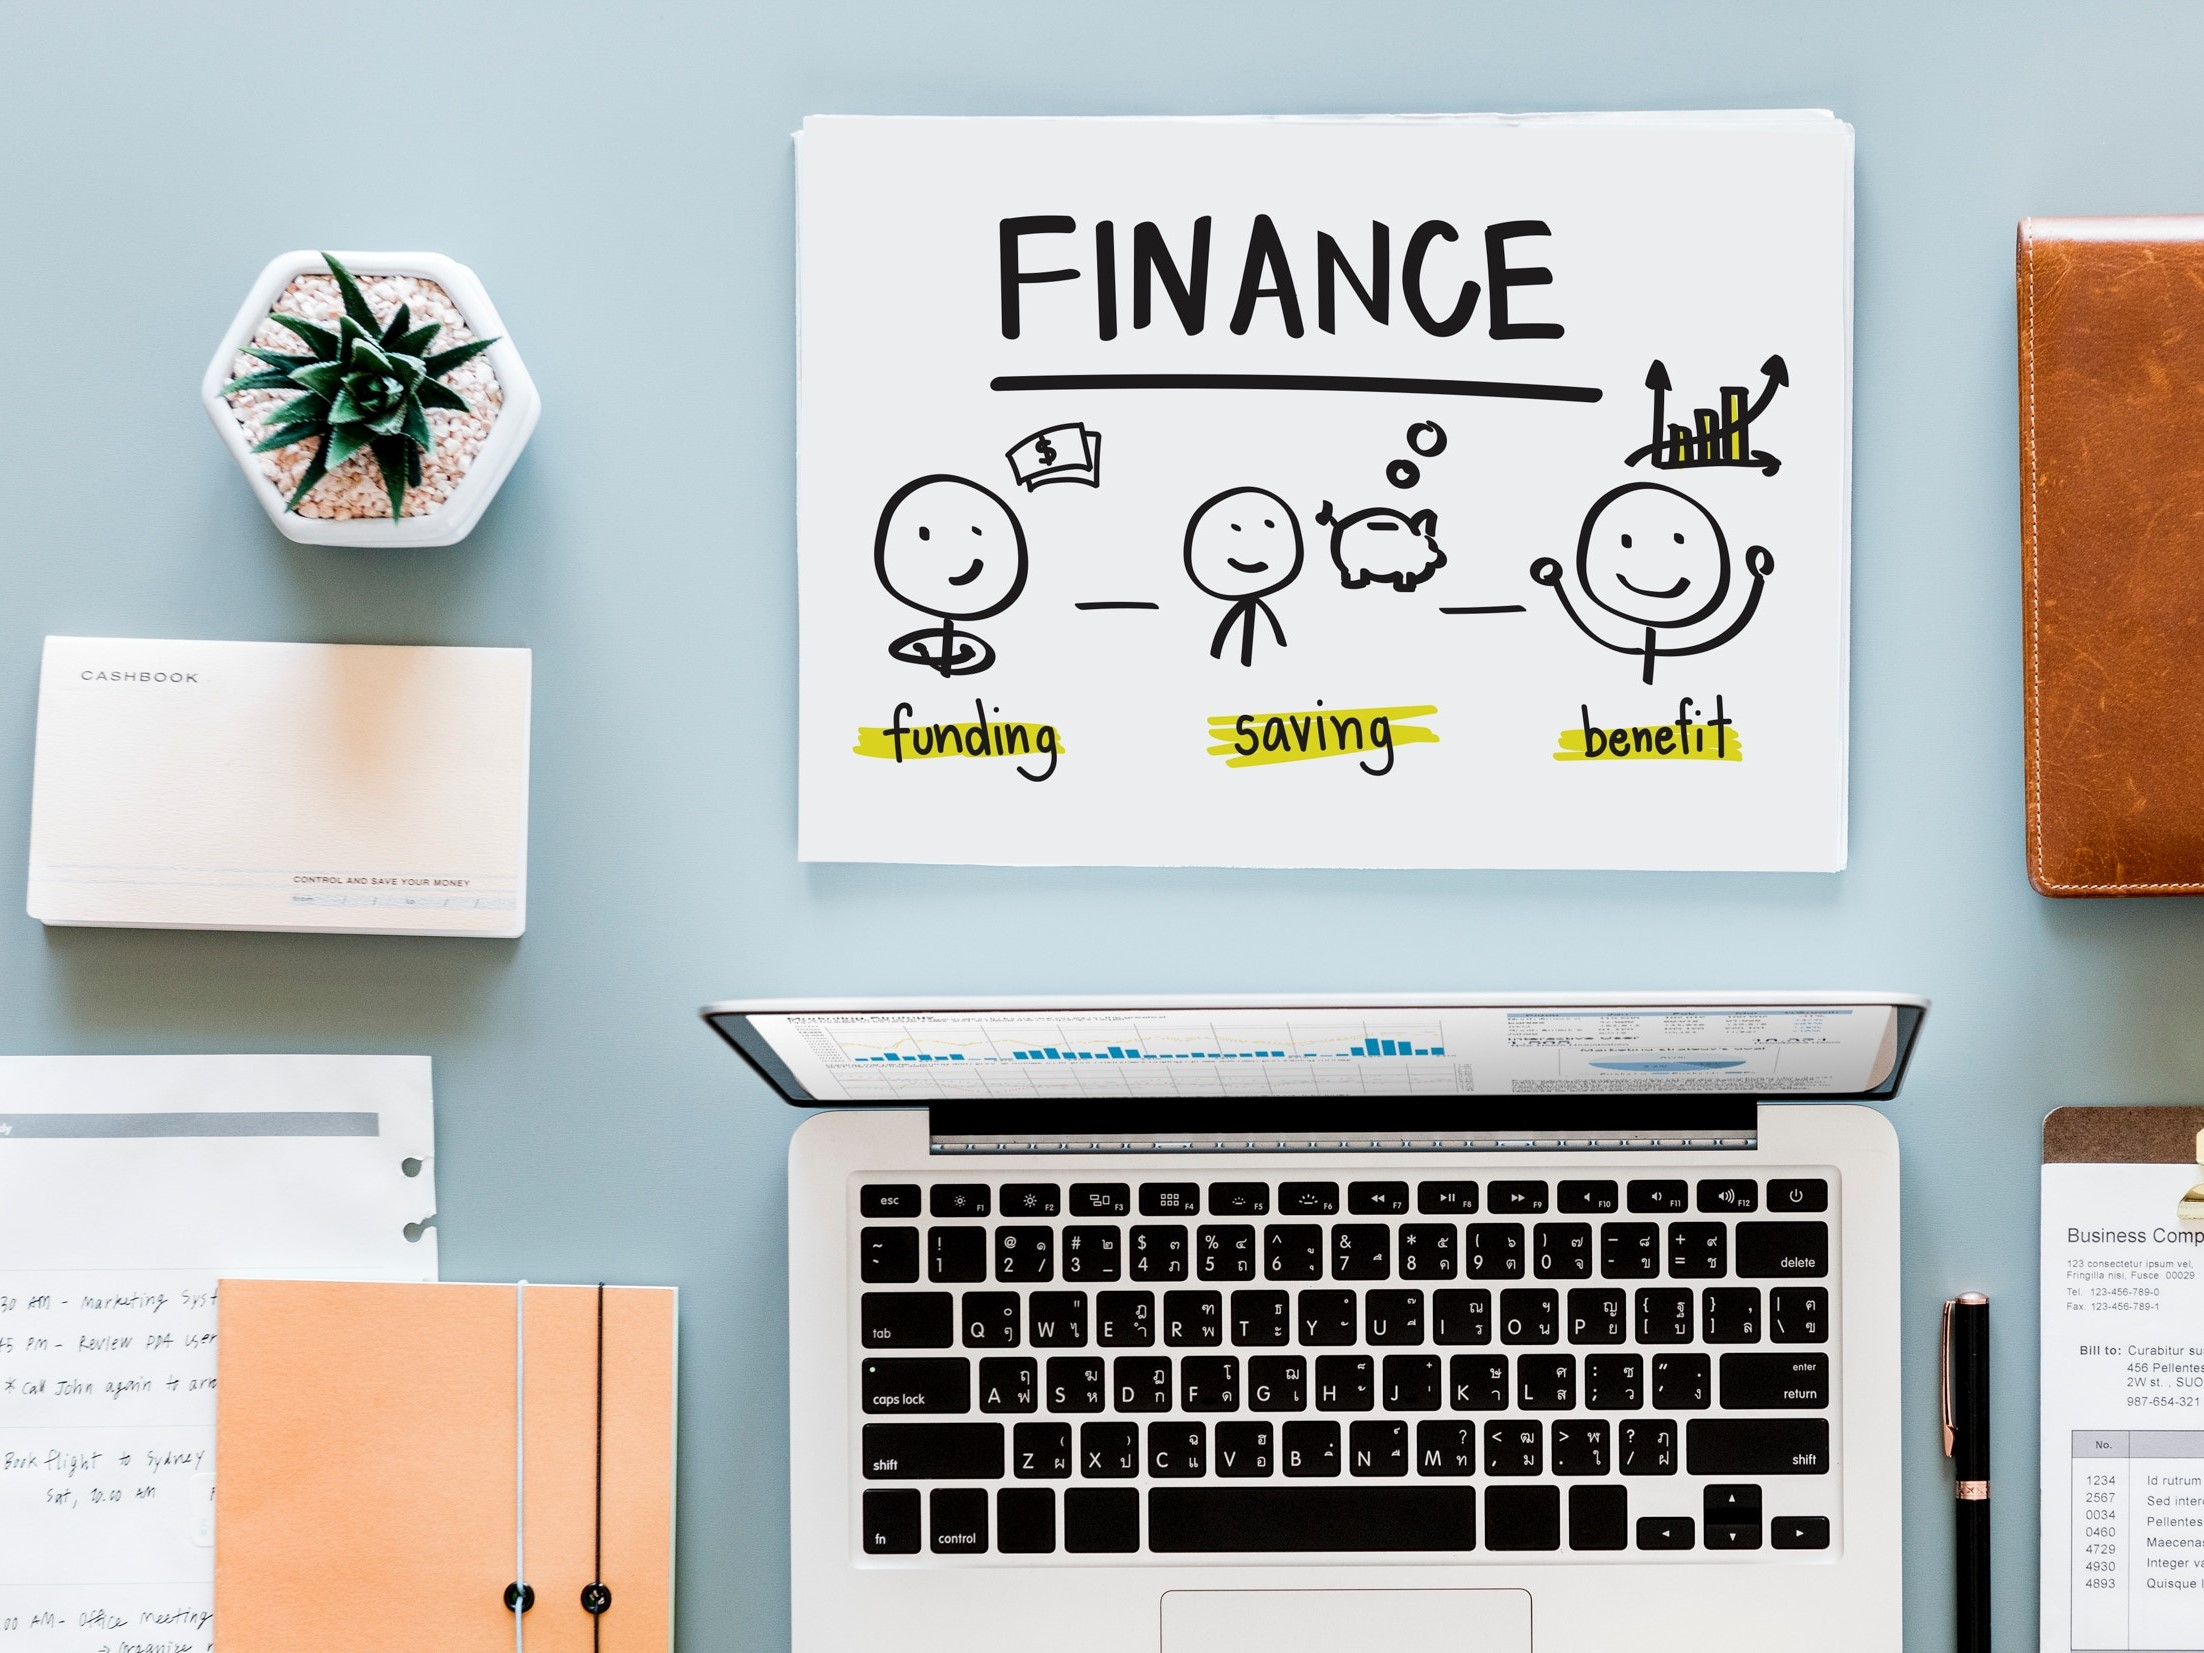 Financial risk awareness rises in new generation. Photo: Credit to Unsplash official website